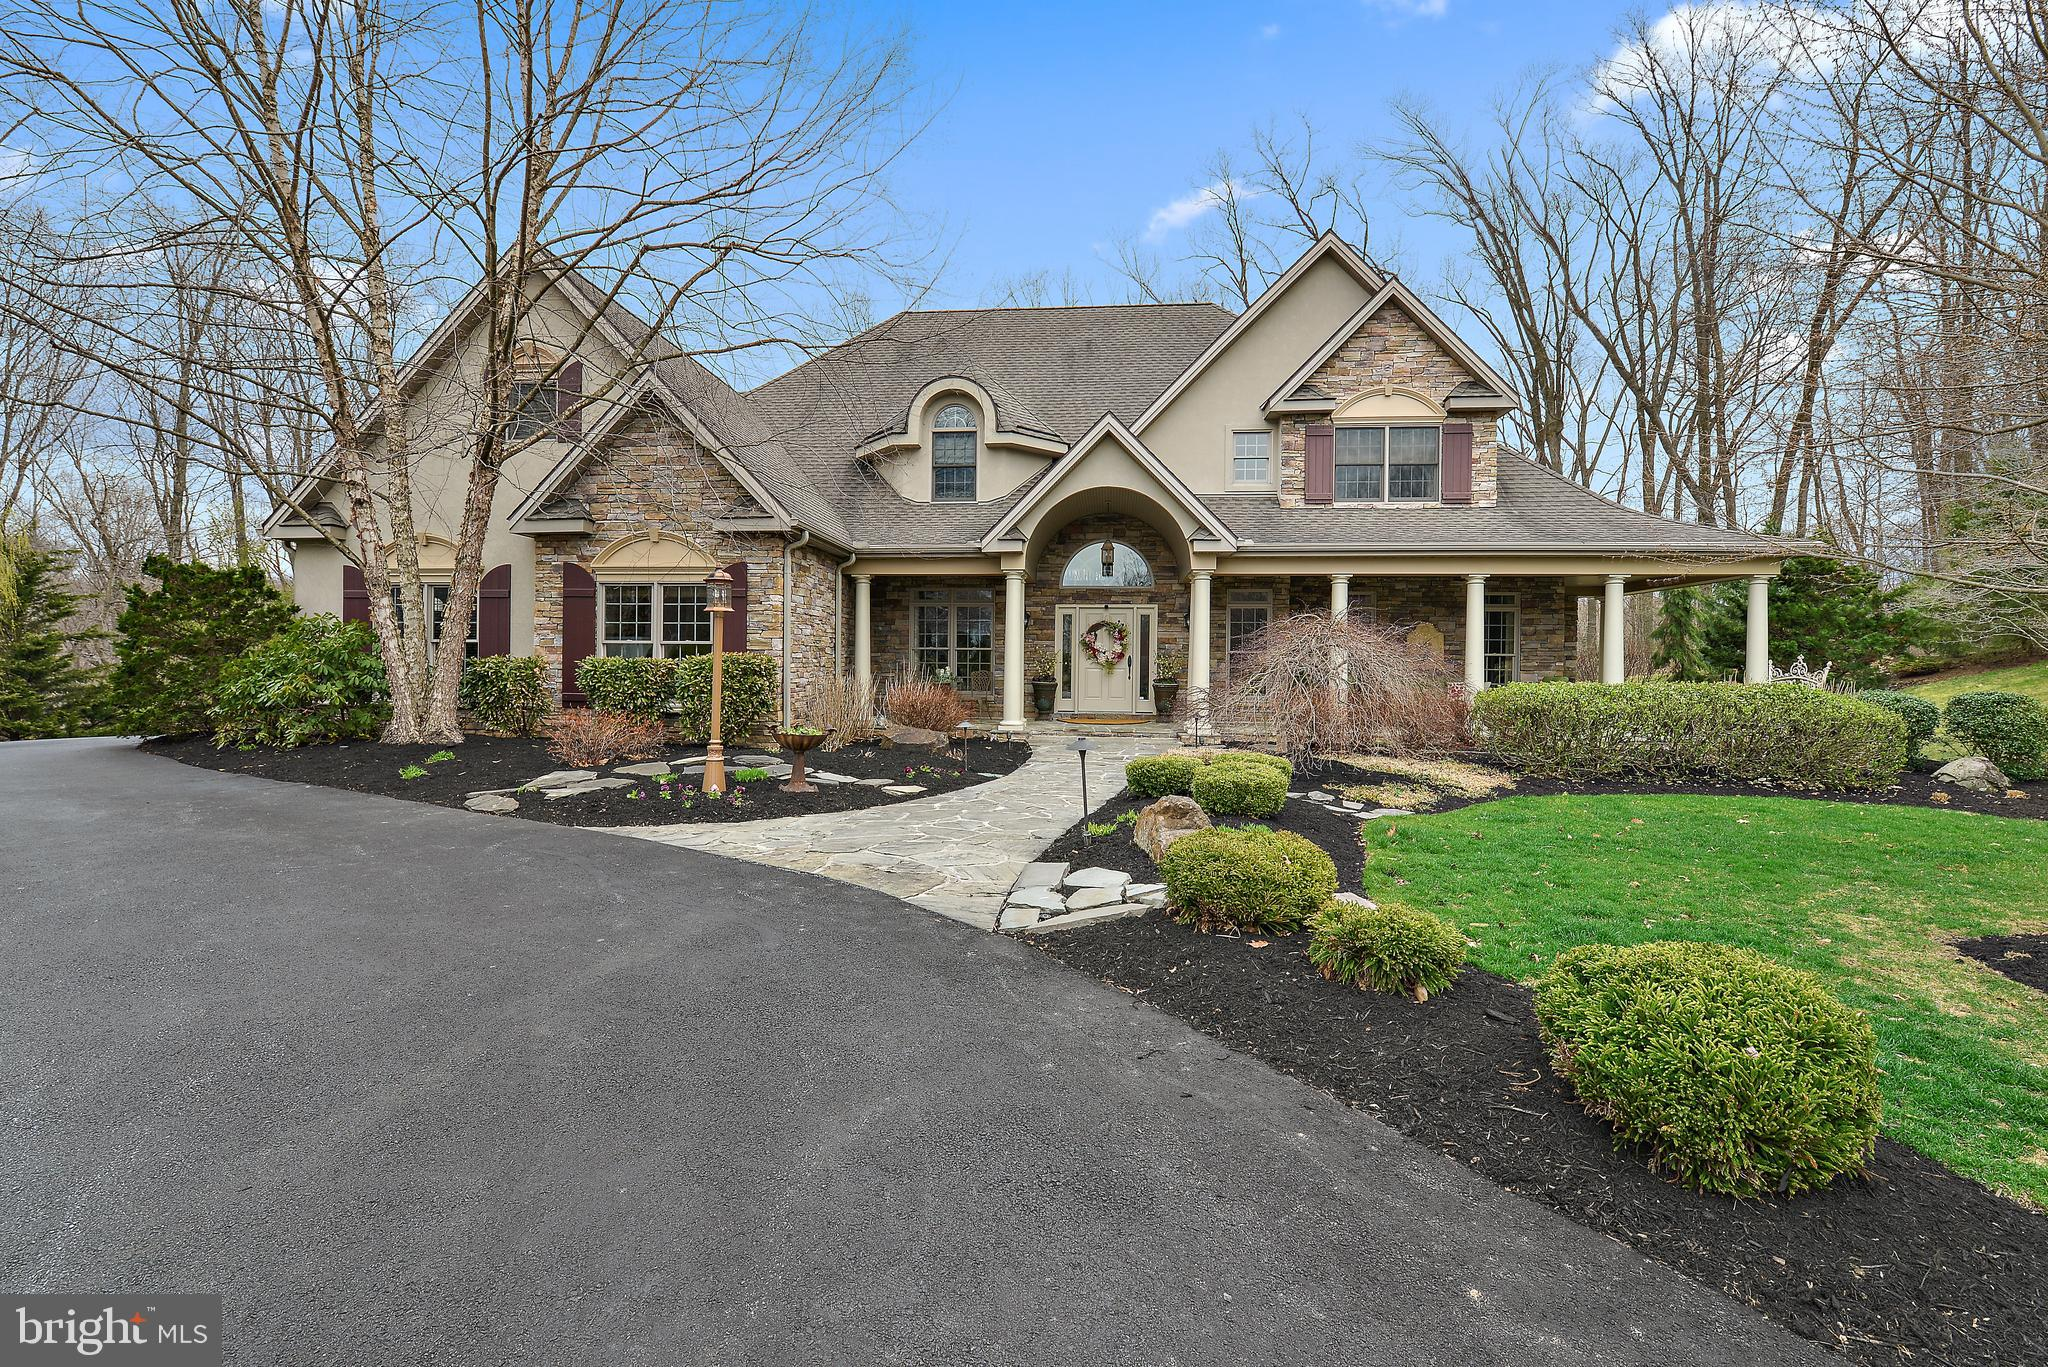 680 MEADOW ROSE COURT, HUMMELSTOWN, PA 17036